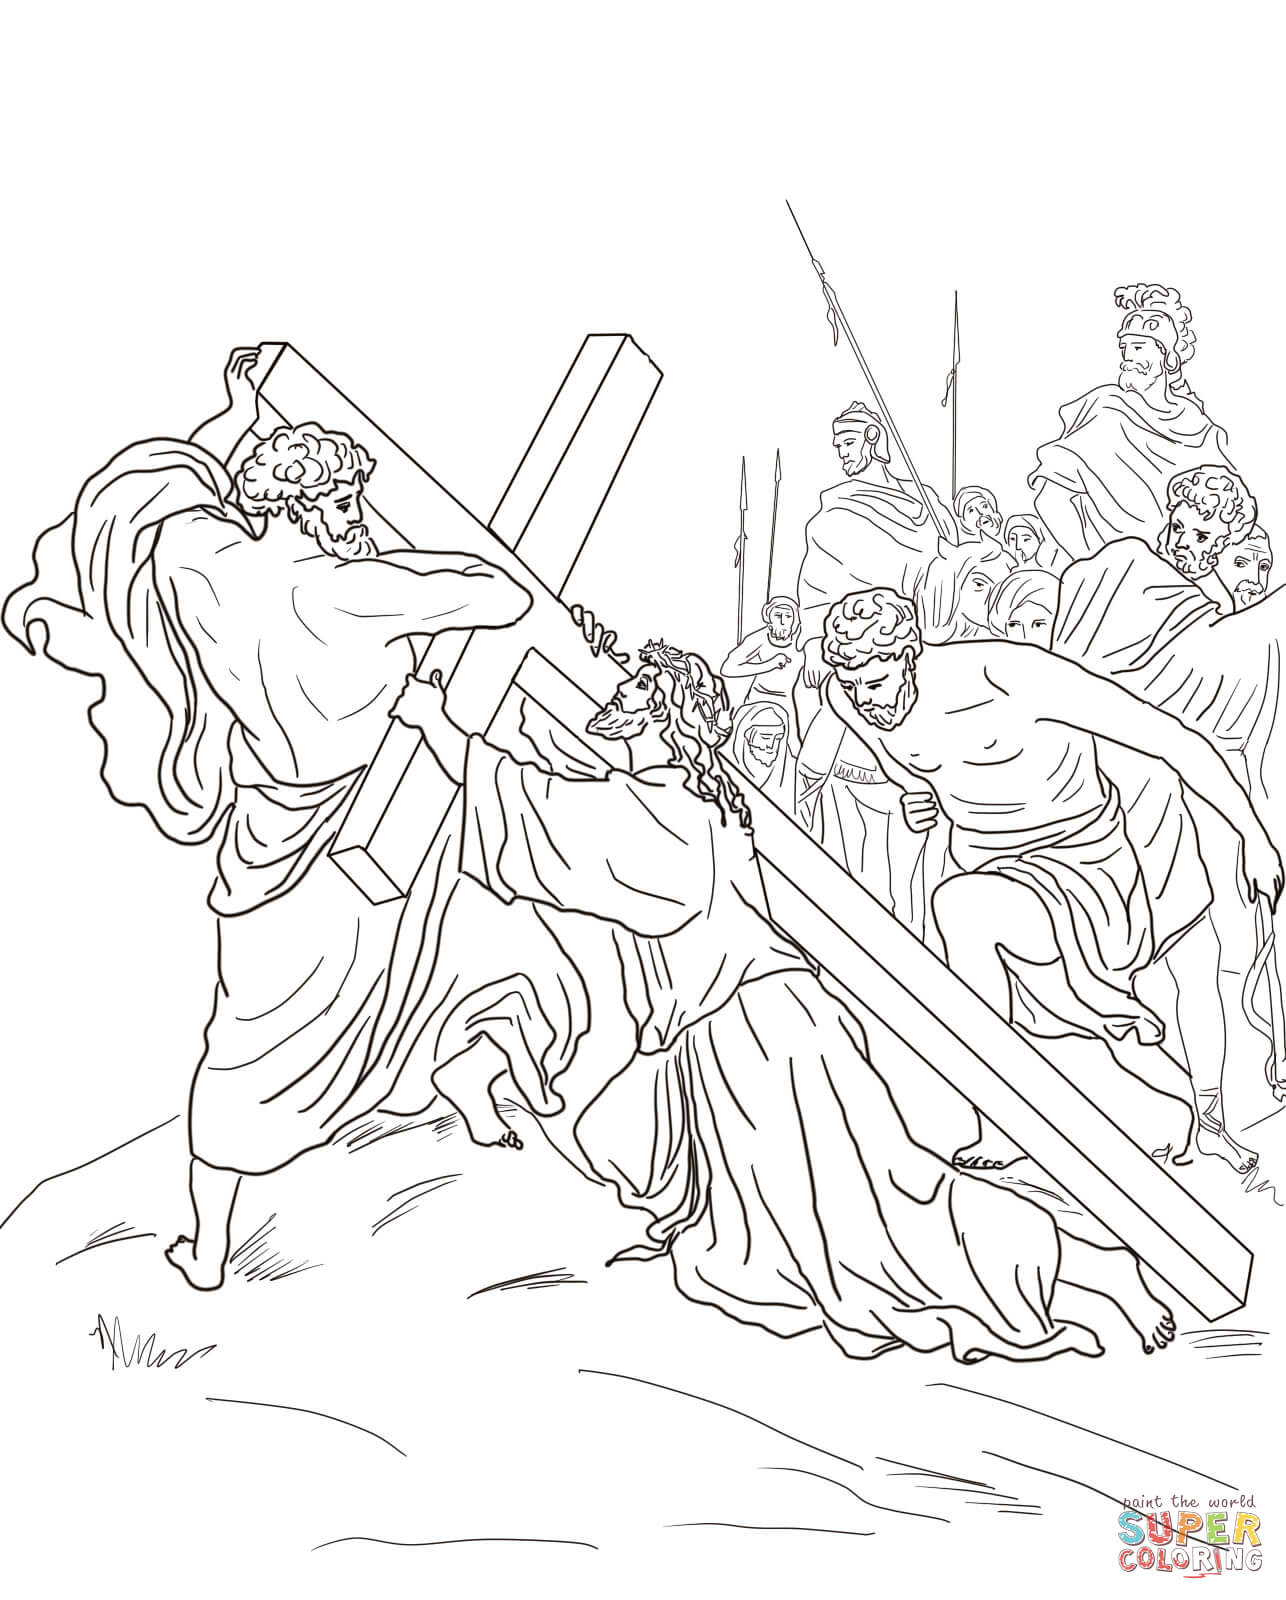 Jesus Carrying Cross Drawing at GetDrawings.com | Free for personal ...